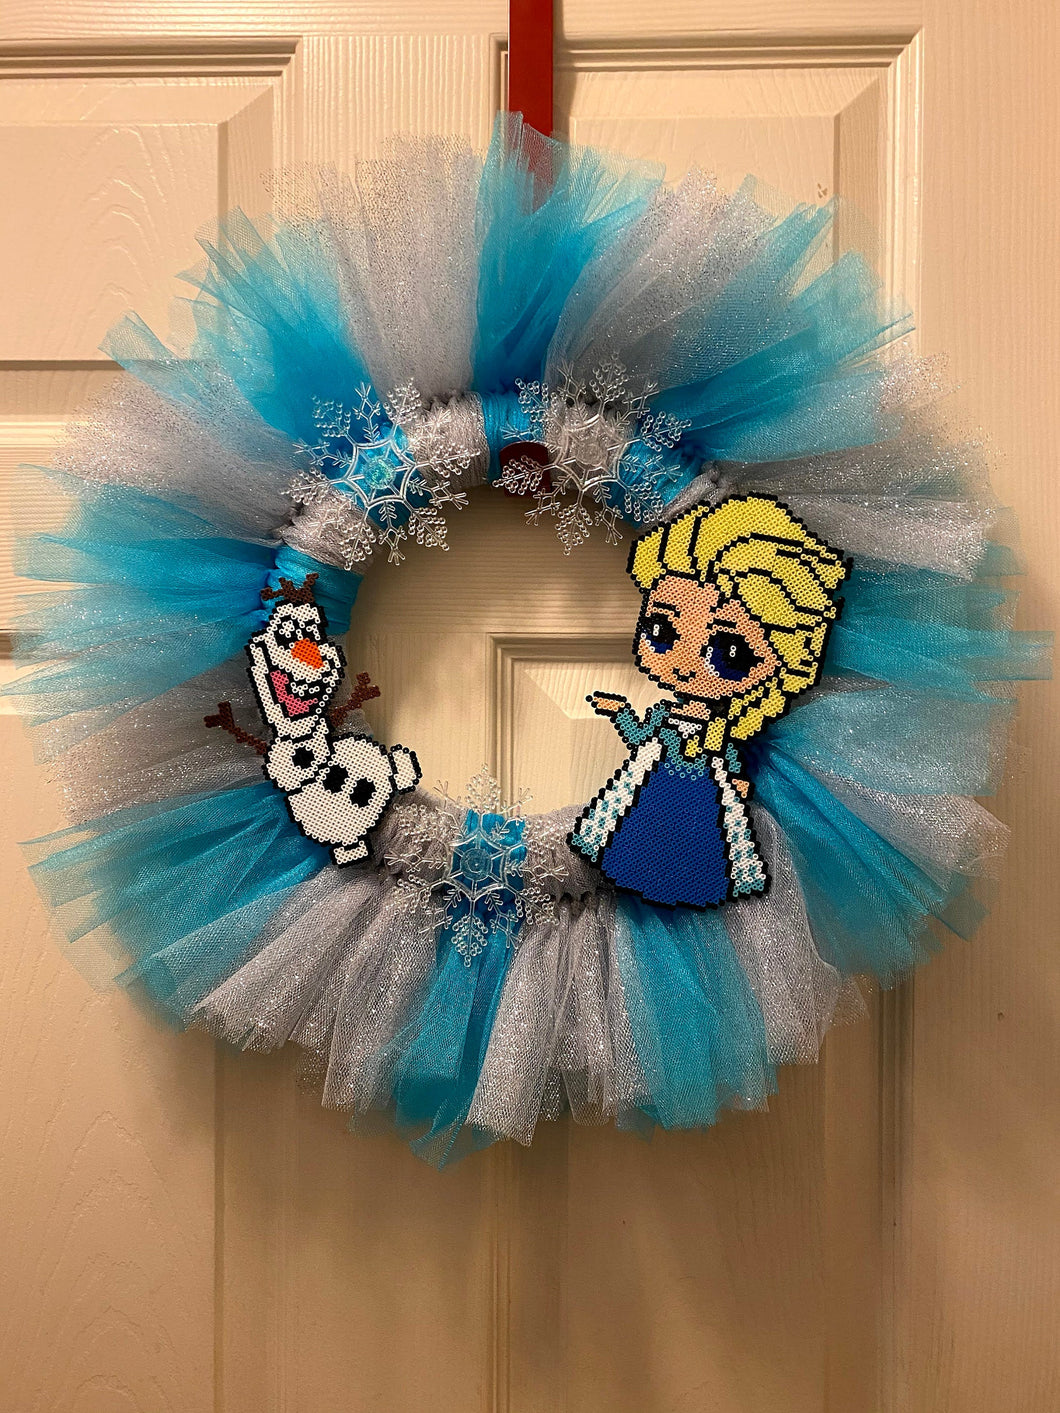 Frozen Wreath Inspired by Elsa and Olaf- 17 in Tulle Wreath with Perler Artkal Beads- Snow, Snowflakes